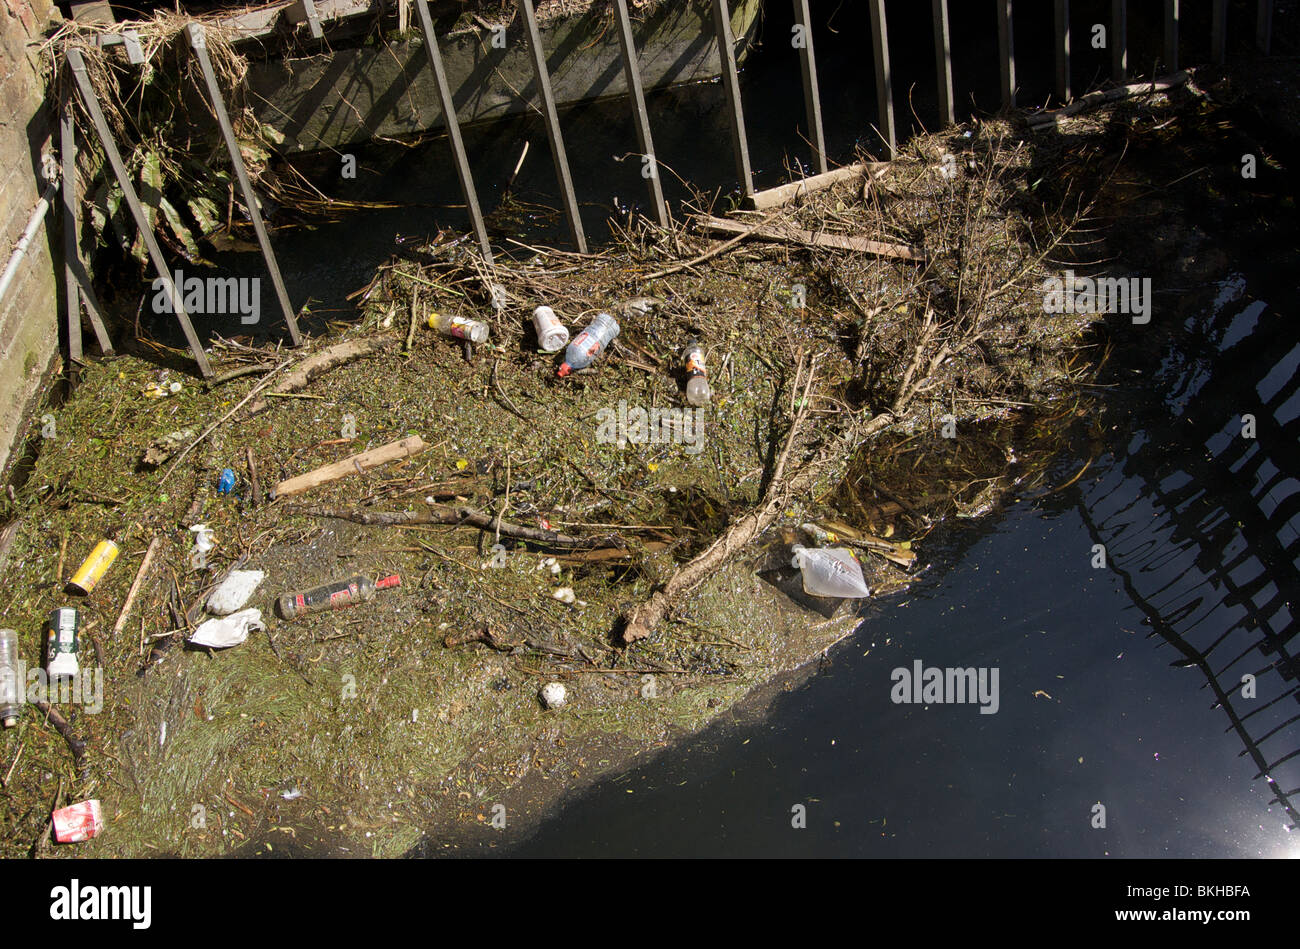 River Pollution - Stock Image